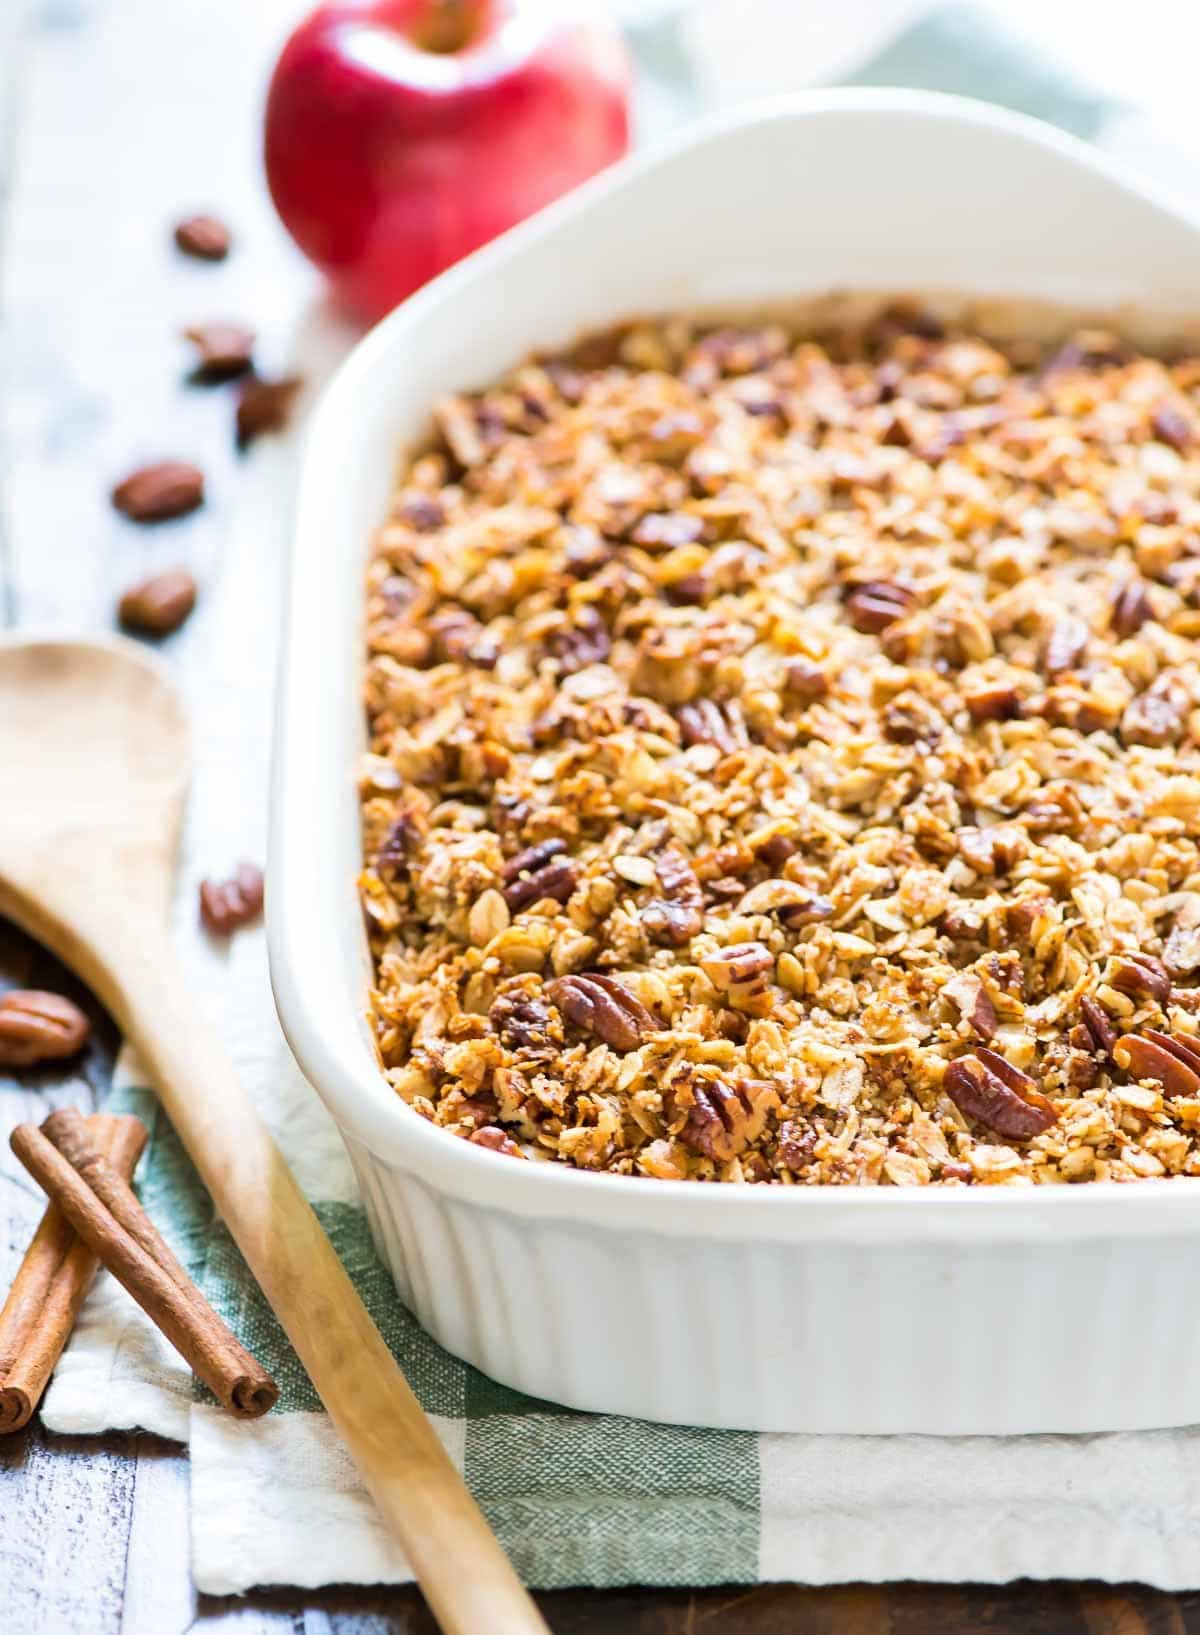 Vegan Apple Crisp with the BEST Pecan Oat Topping. Easy, healthy, and gluten free! This recipe is made with coconut oil and maple syrup, so it's clean eating approved. @wellplated